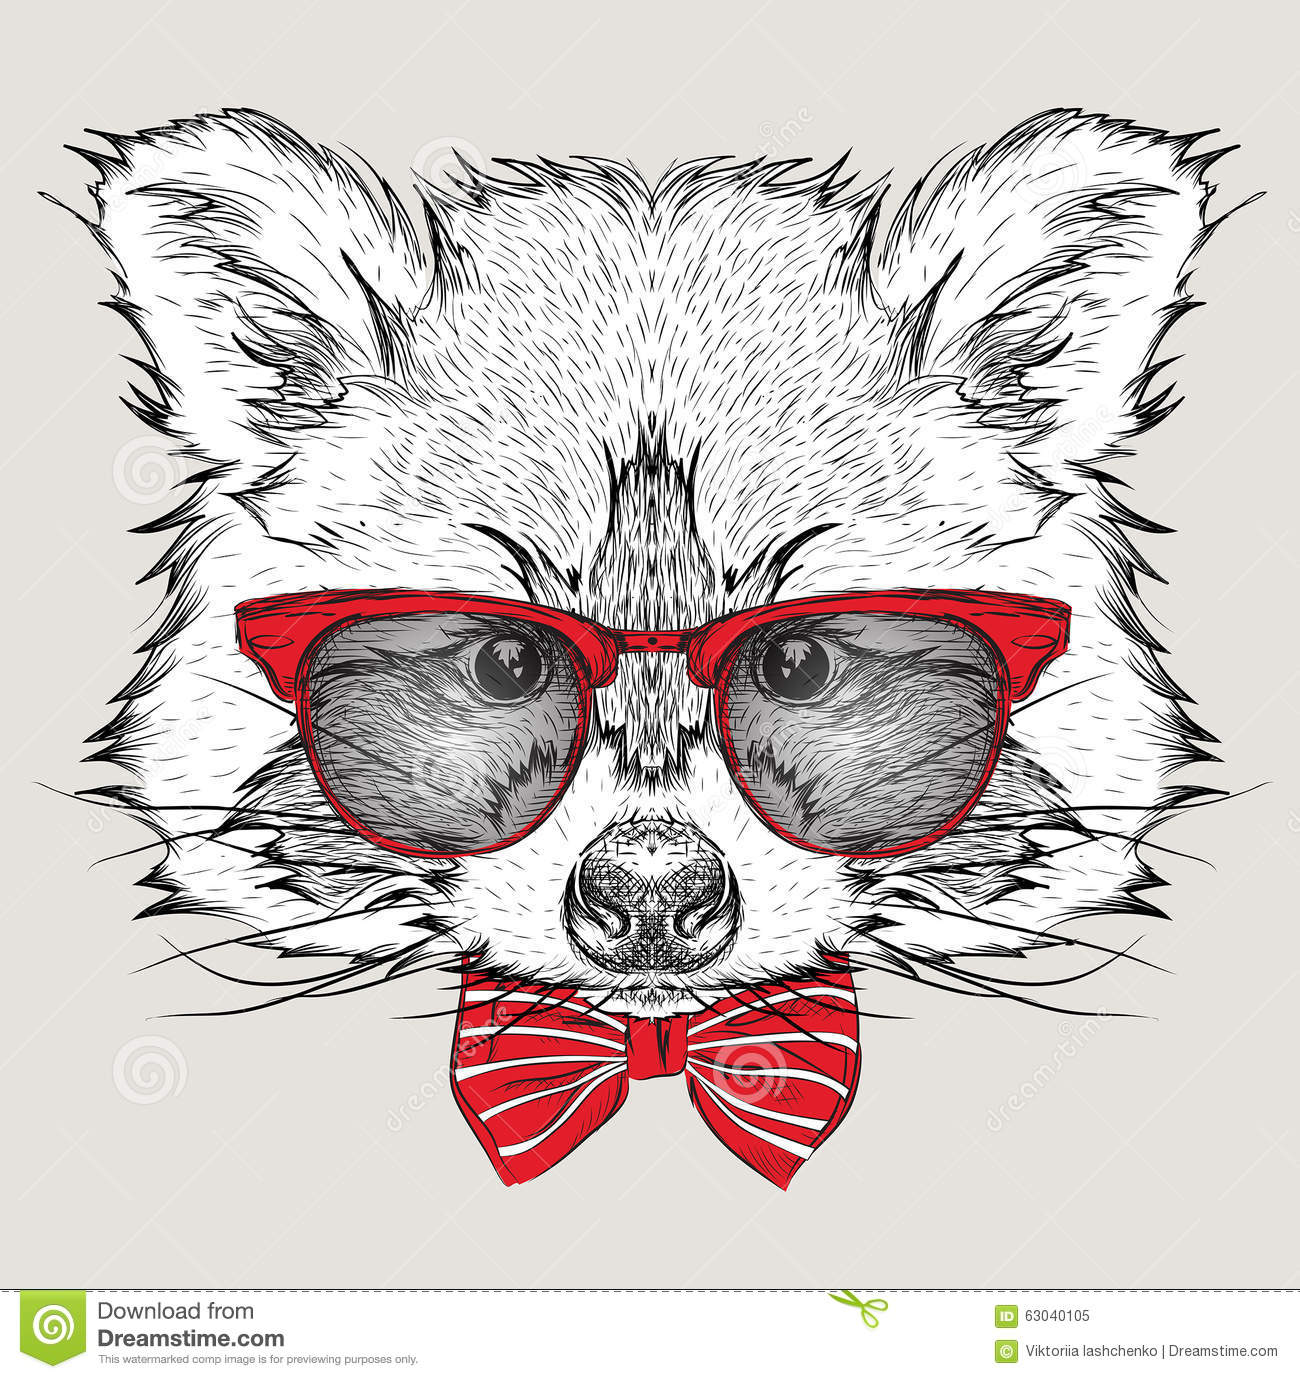 f1754339c176a Image Portrait raccoon in the cravat and with glasses. Hand draw vector  illustration.